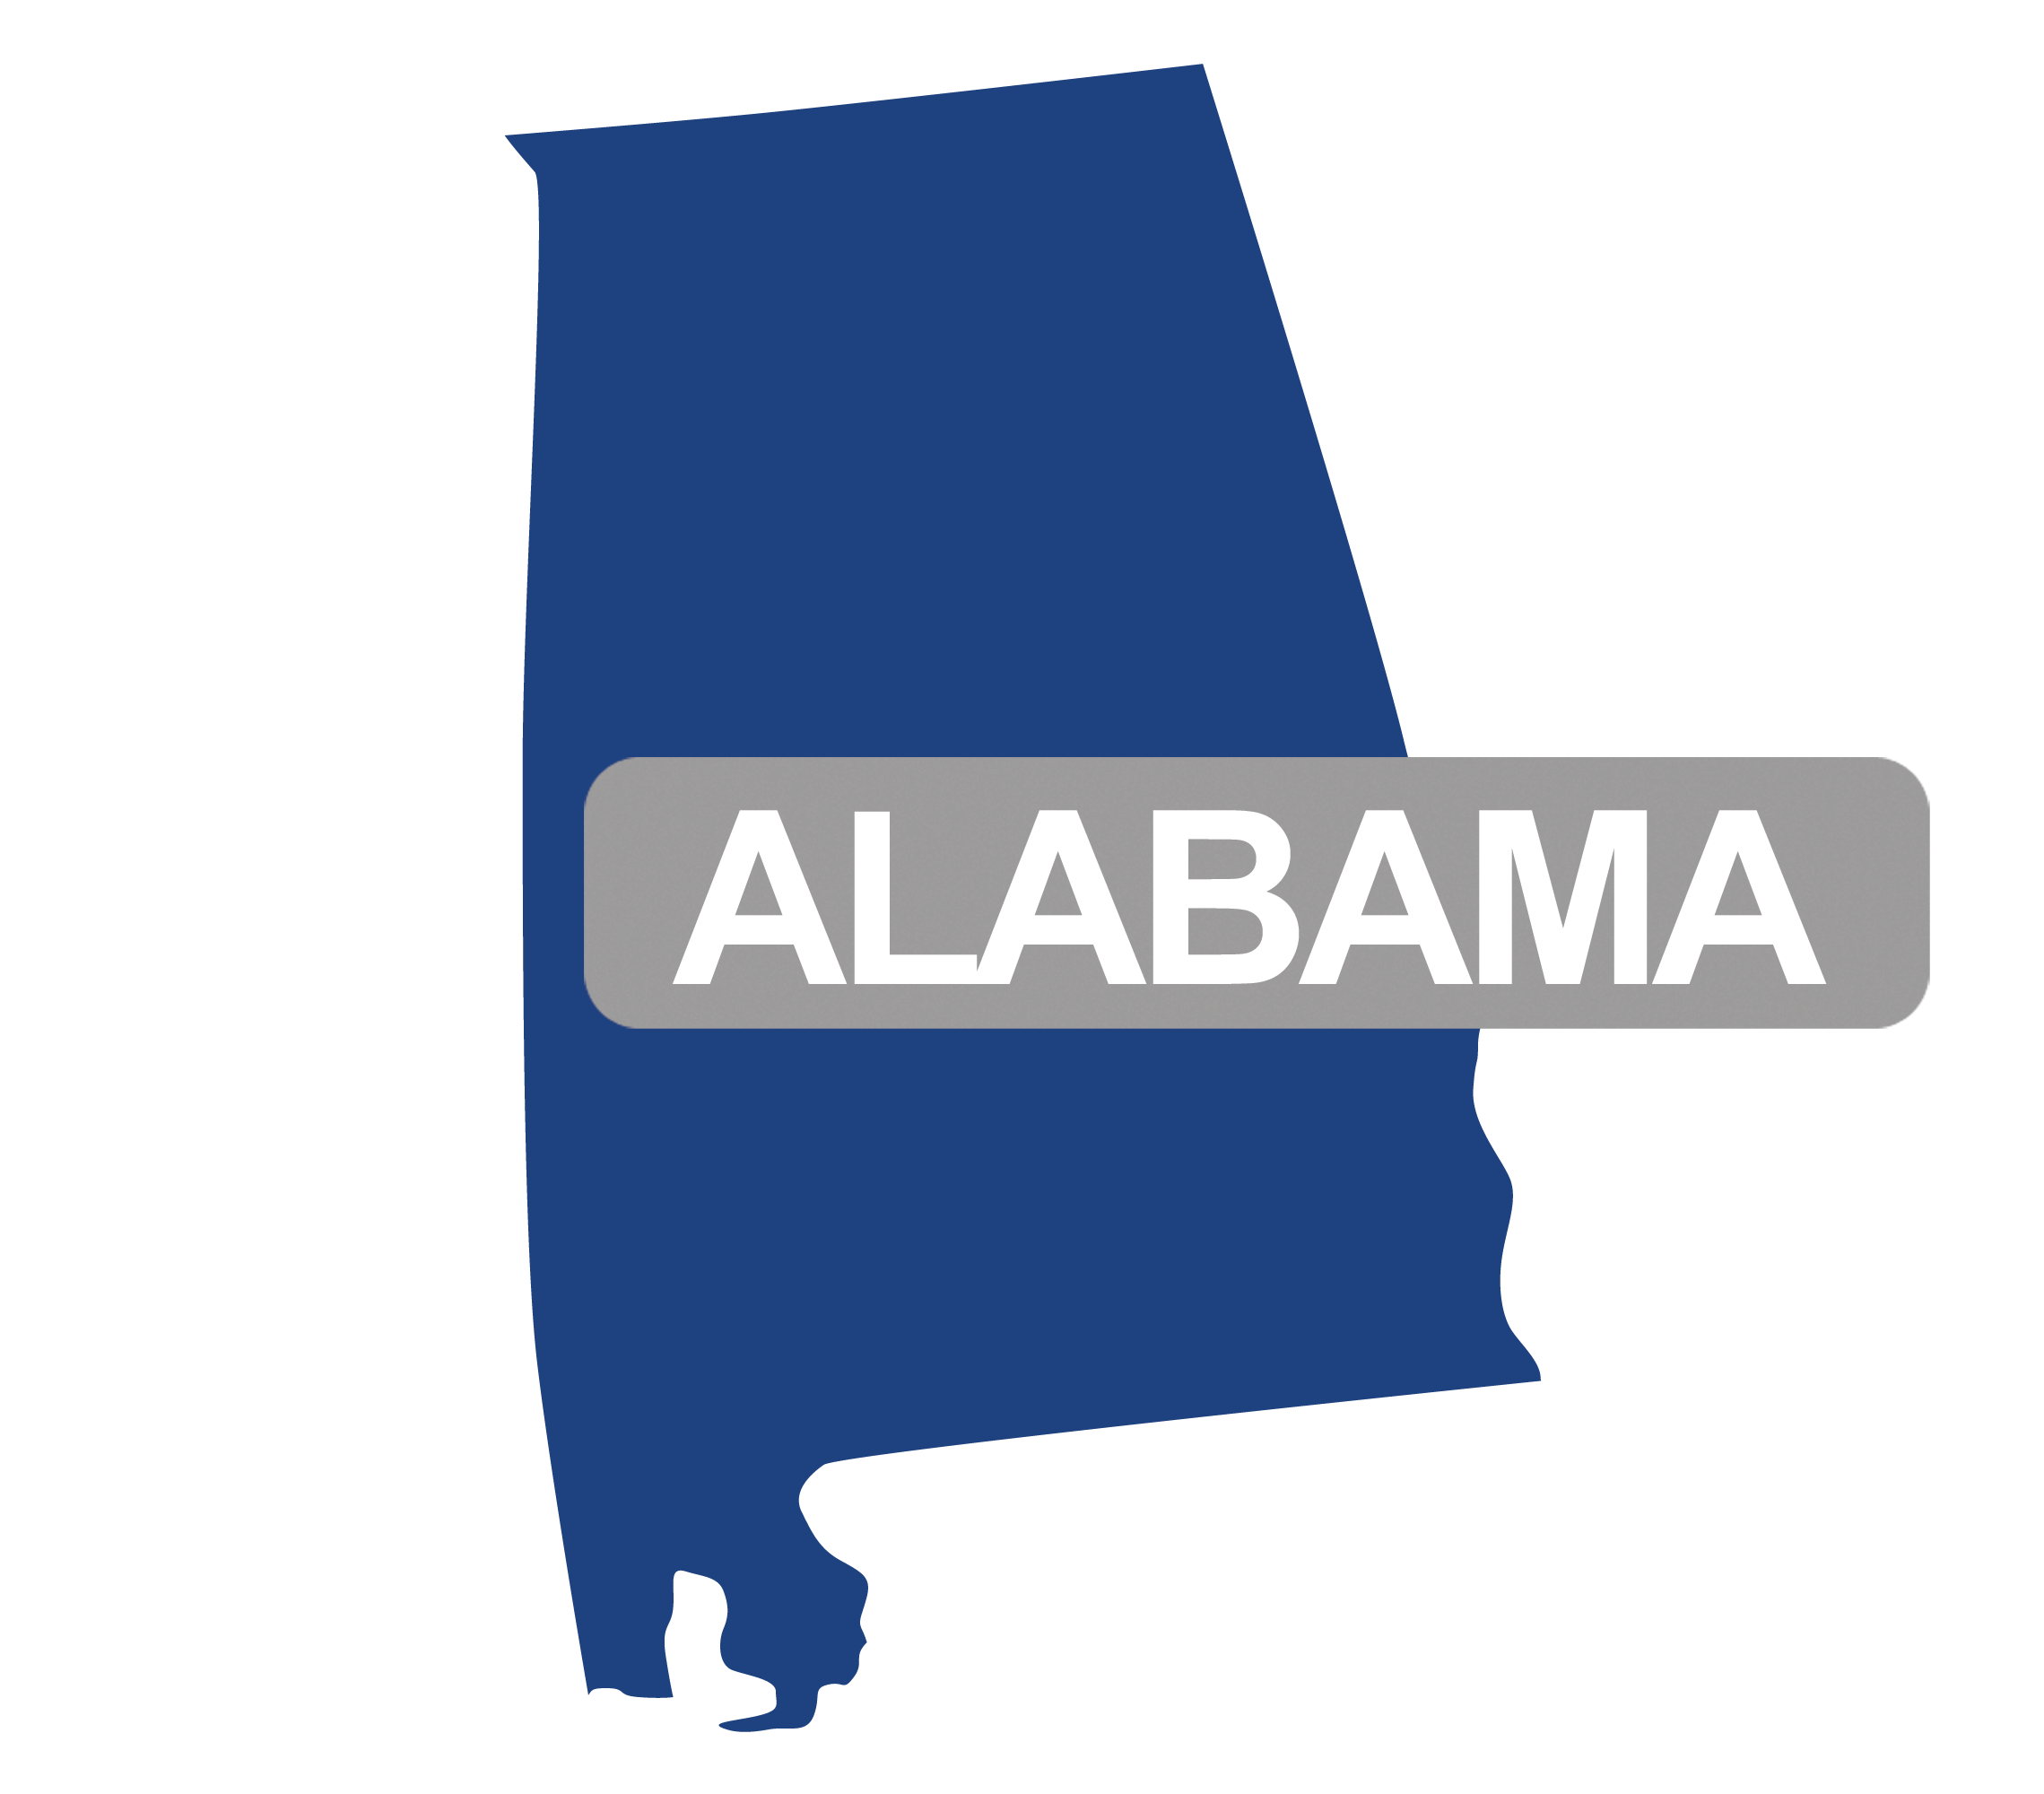 Alabama Electrical Continuing Education for Journeyman, Master Electricians, and Electrical Contractors